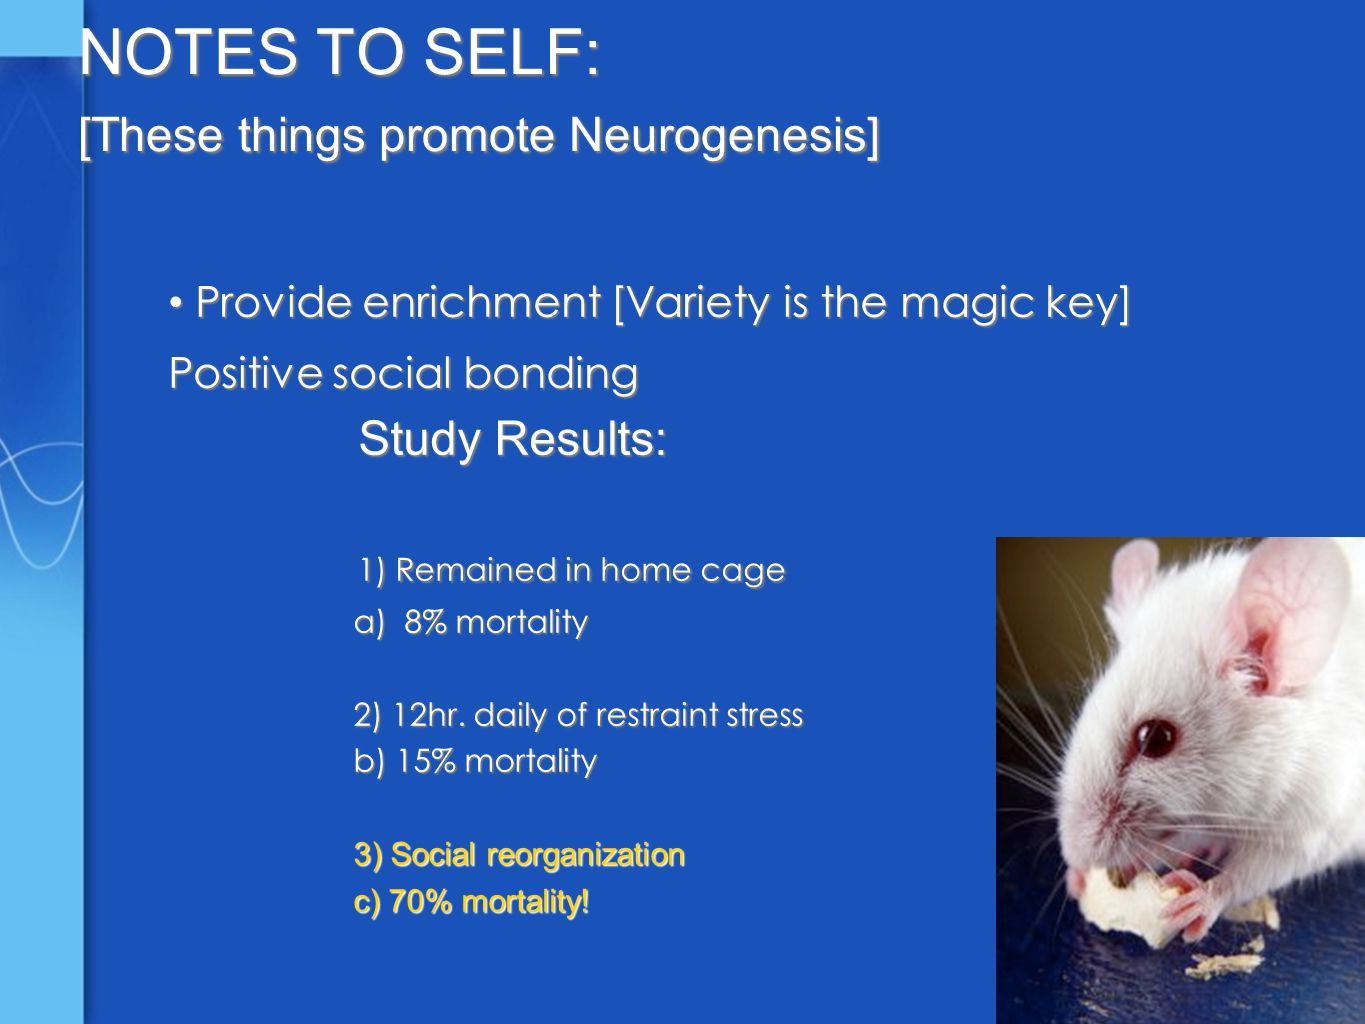 NOTES TO SELF: [These things promote Neurogenesis] Provide enrichment [Variety is the magic key] Provide enrichment [Variety is the magic key] Positive social bonding Study Results: Study Results: 1) Remained in home cage 1) Remained in home cage a) 8% mortality a) 8% mortality 2) 12hr.